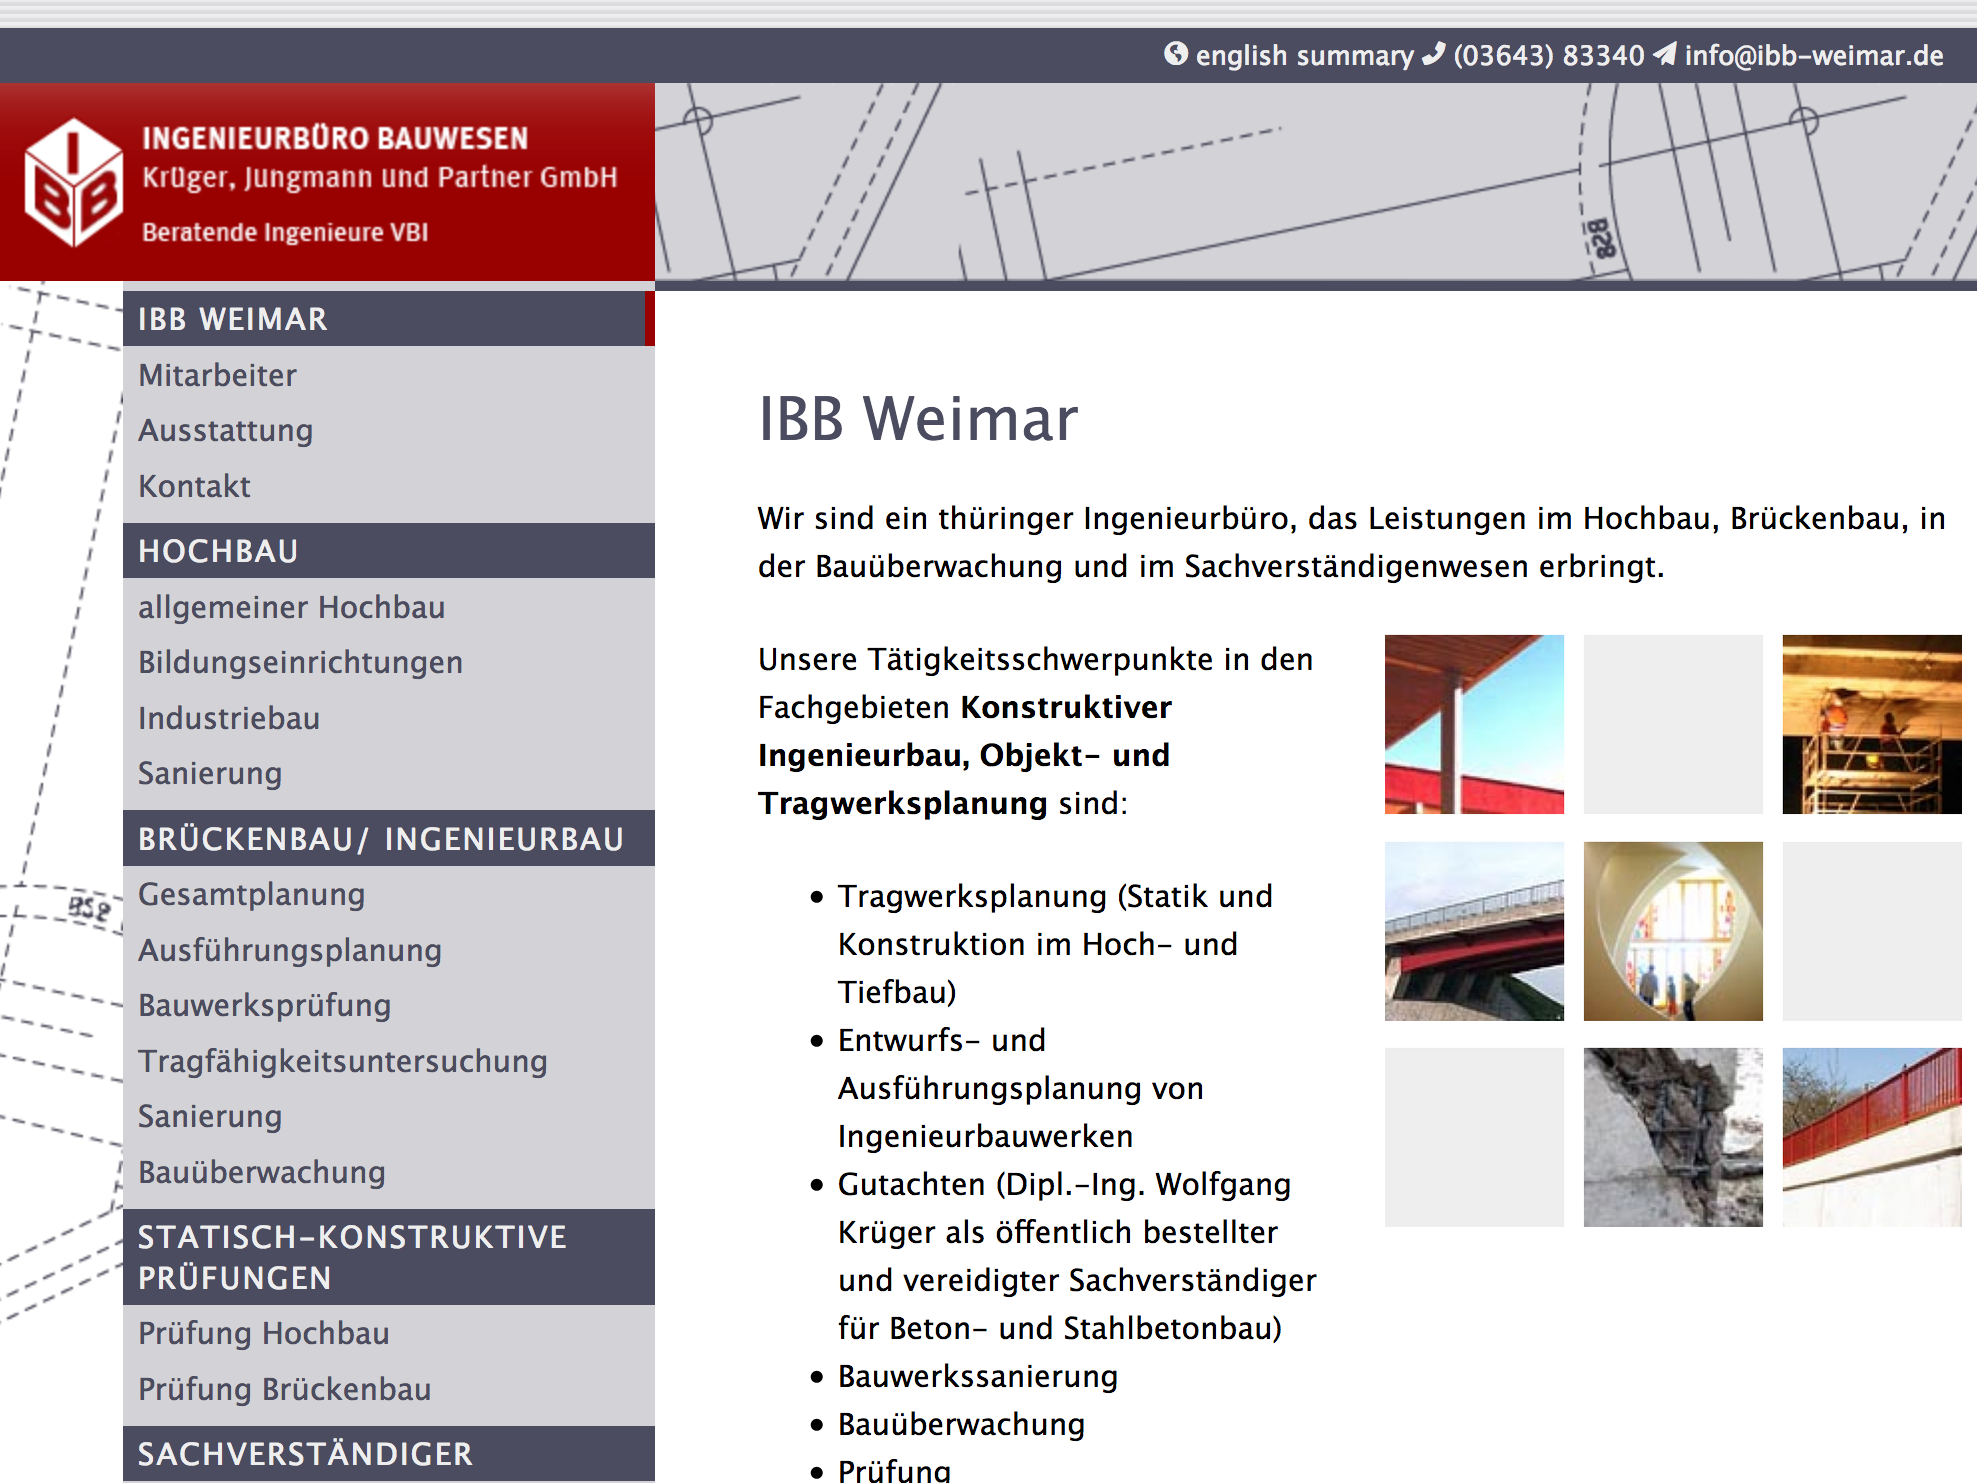 Website ibb-weimar.de